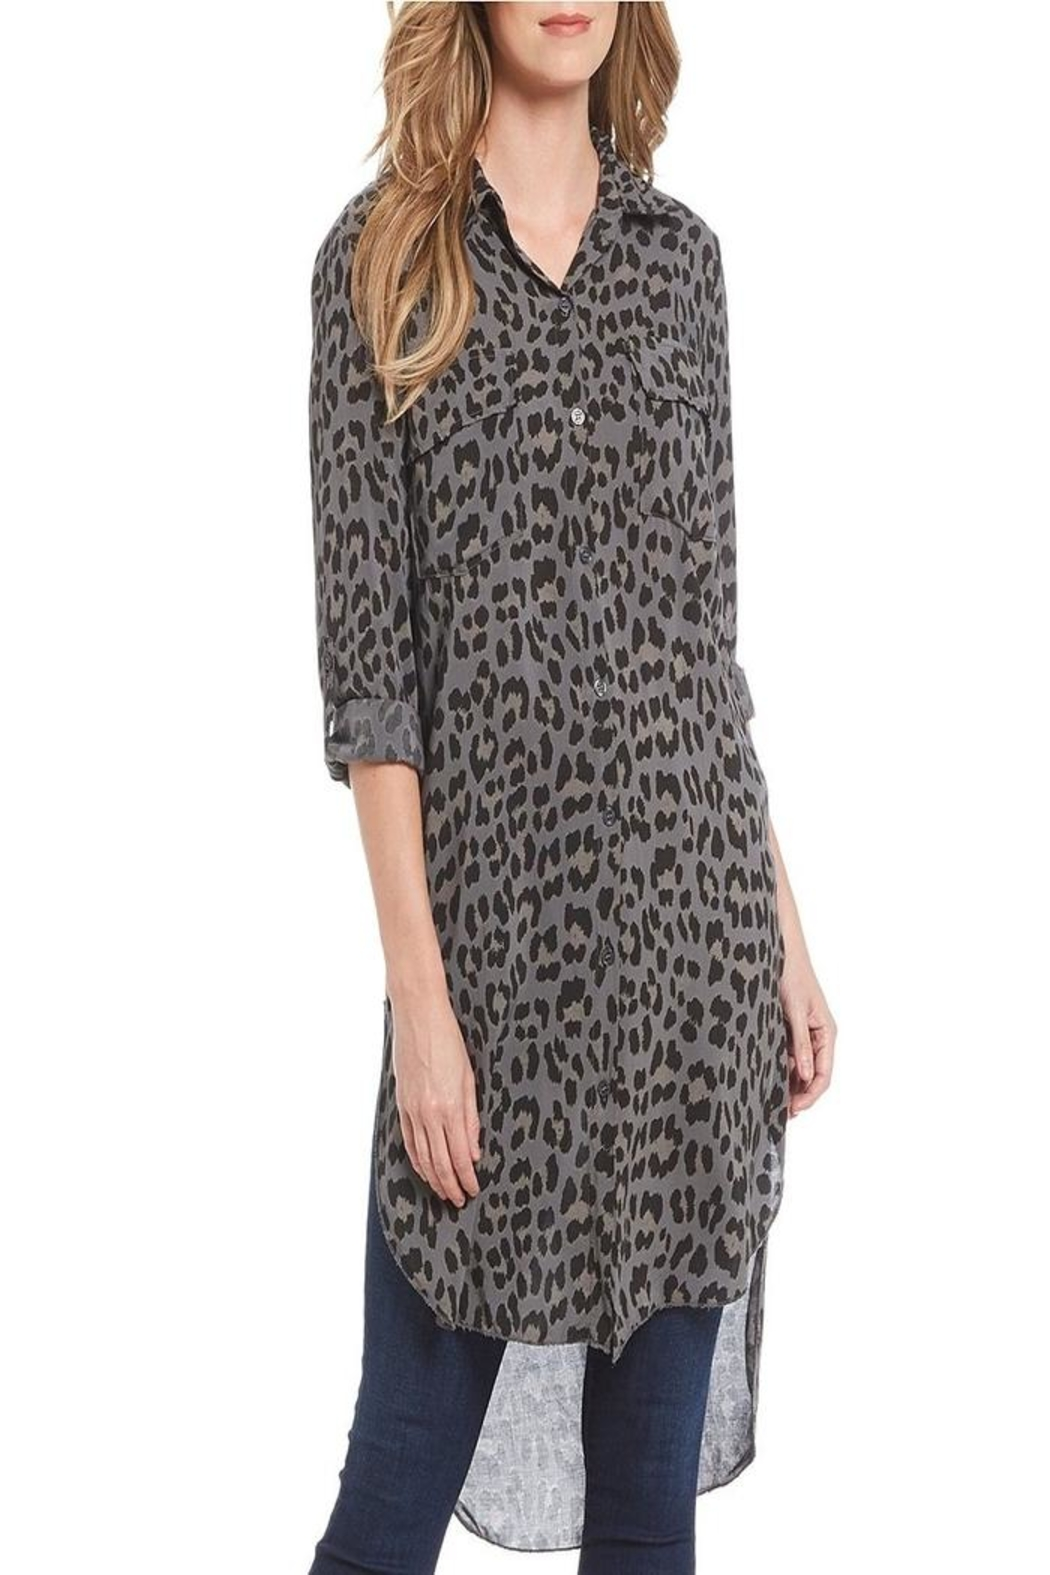 M made in Italy Leopard Tunic Shirt - Main Image